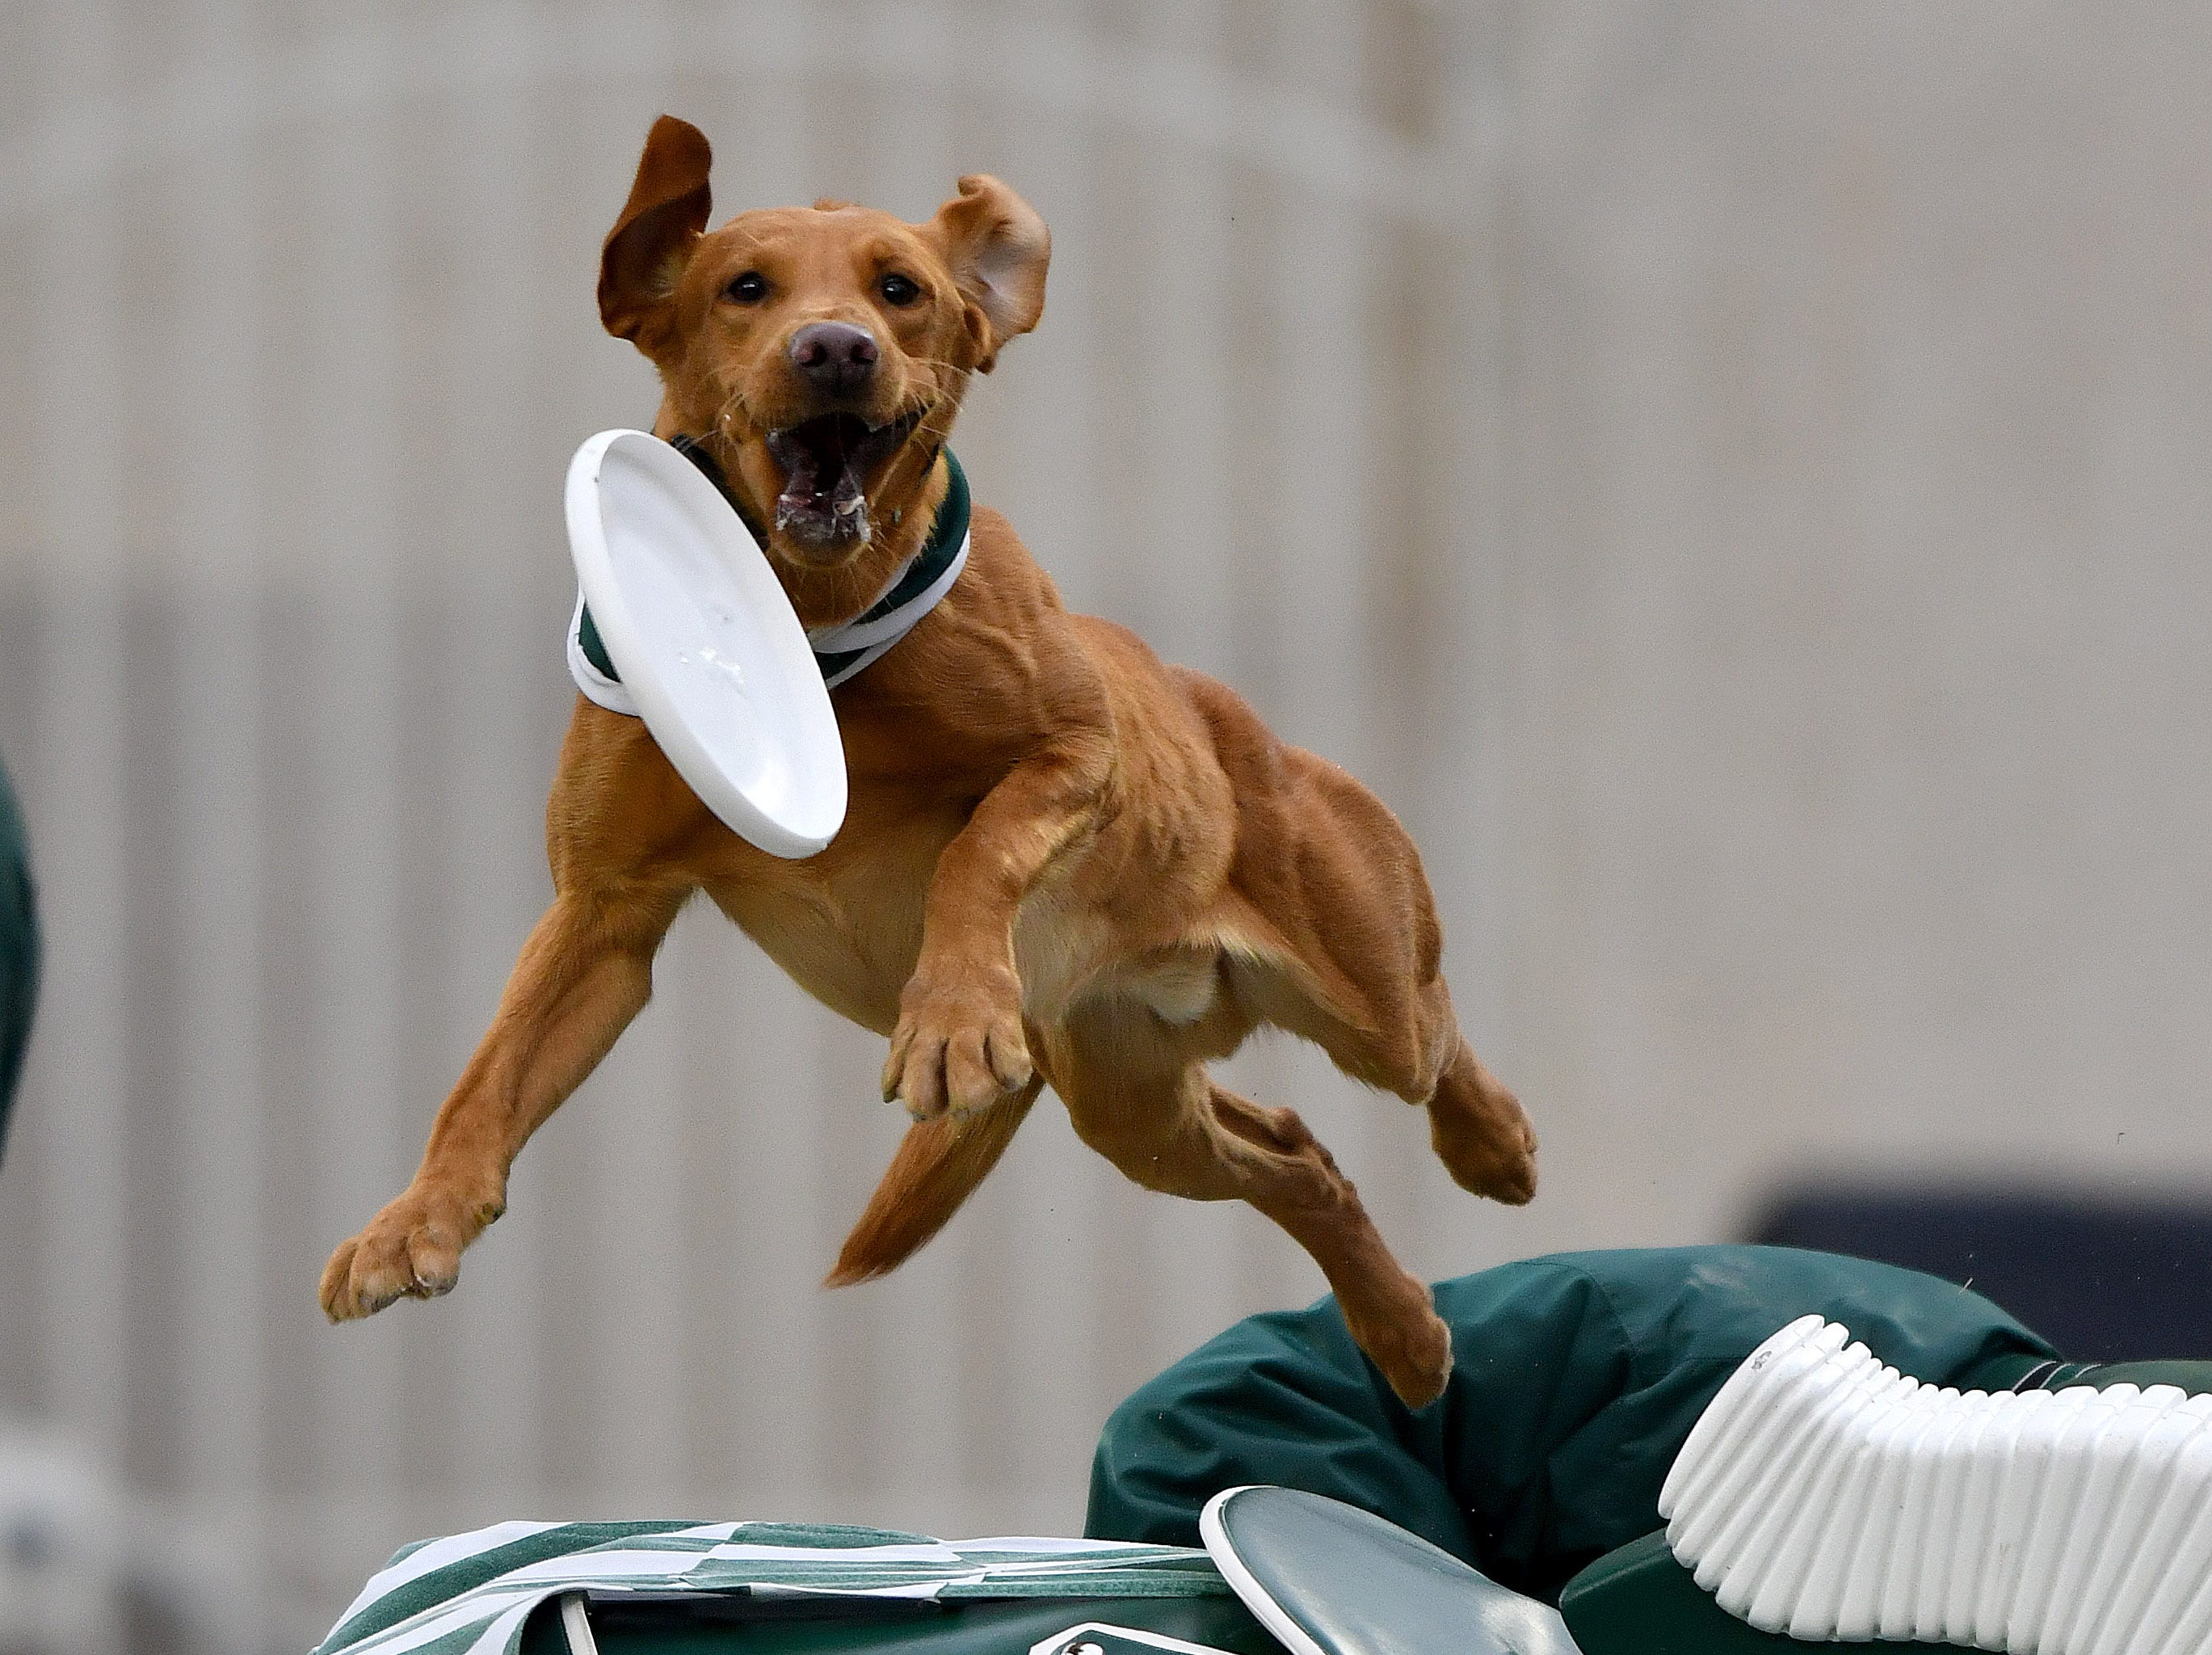 Zeke The Wonder Dog leaps high over Sparty's back for a flying disc.